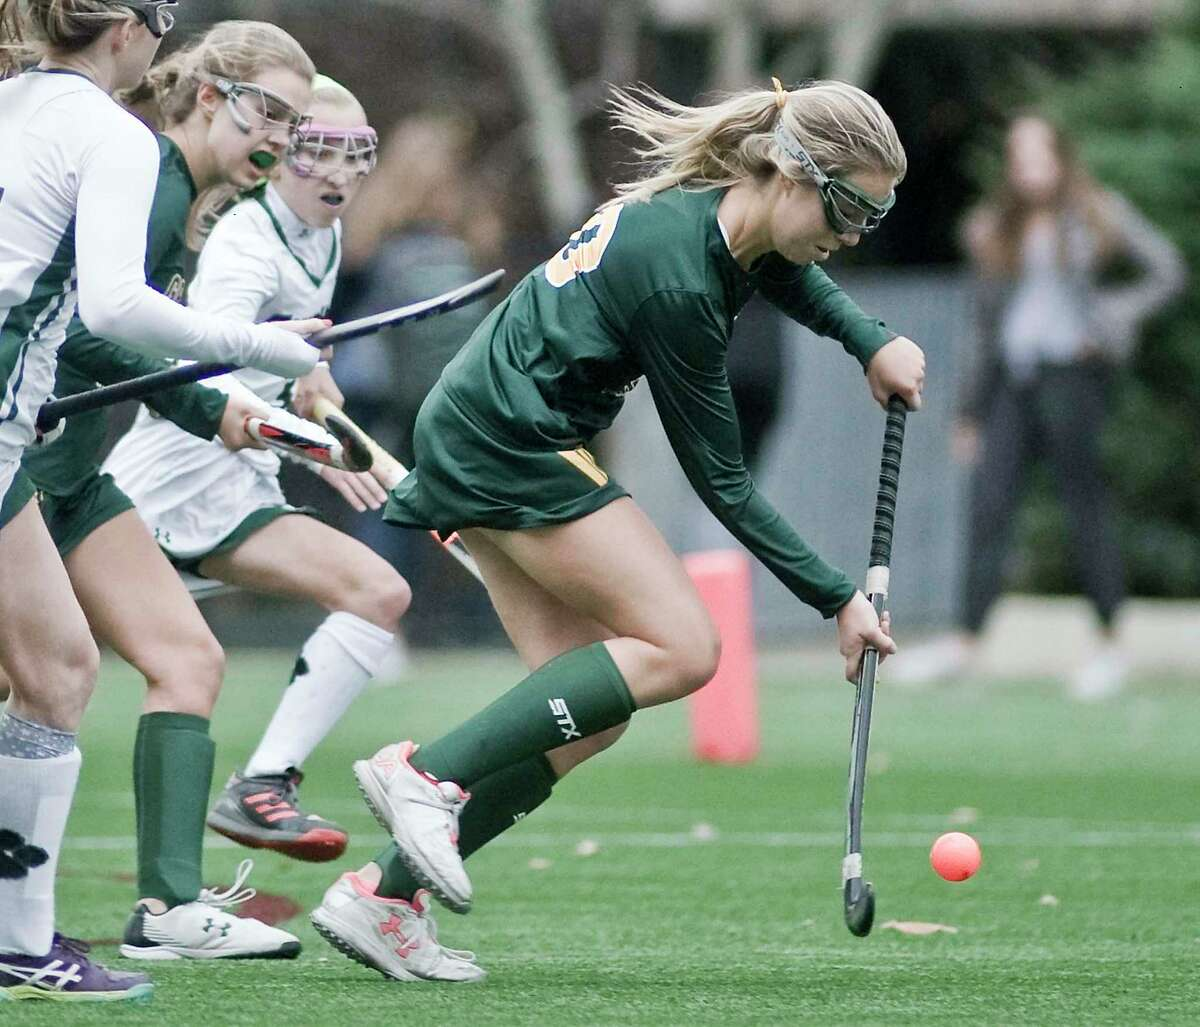 Greenwich Academy's Elektra Rodger moves the ball up the field during a game against Sacred Heart Greenwich last season.